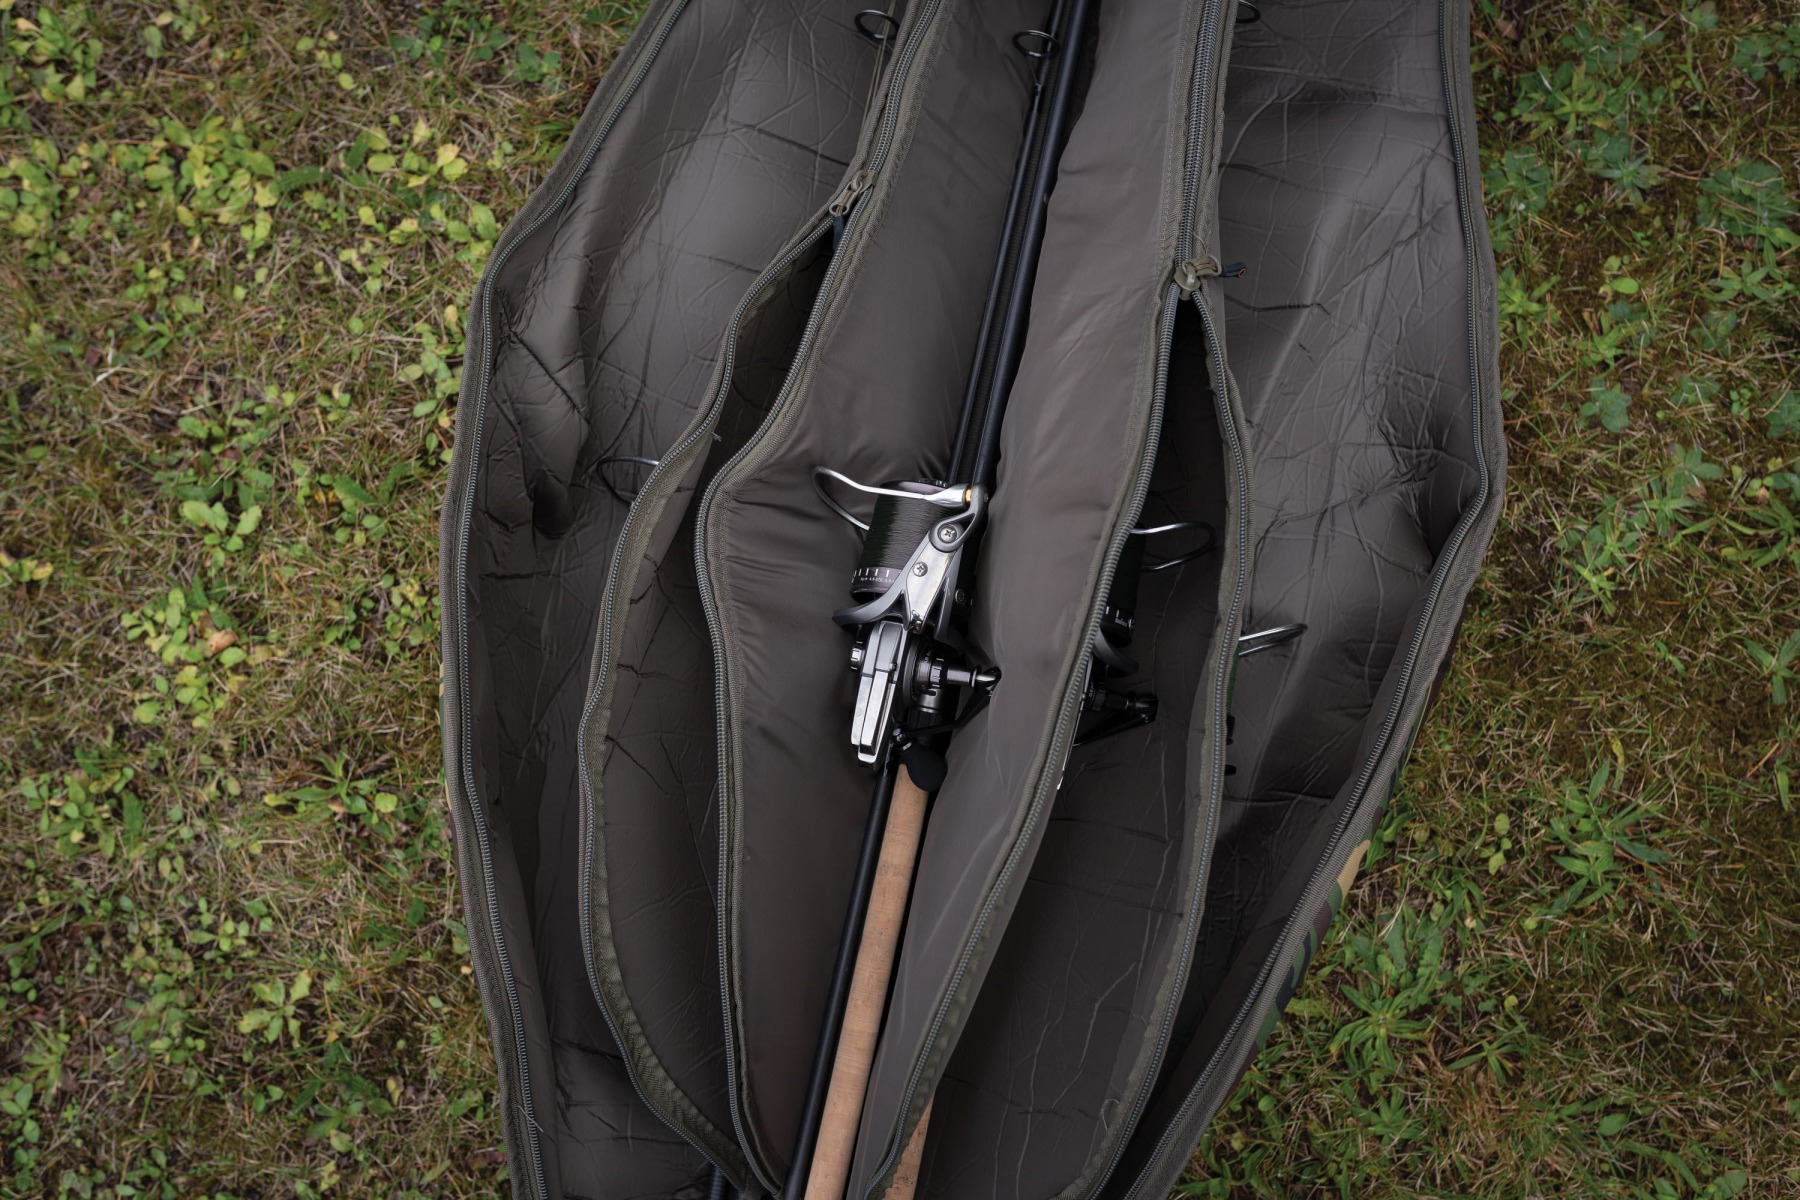 The padded protection on the 5/6 Rod Holdall is off-the-scale